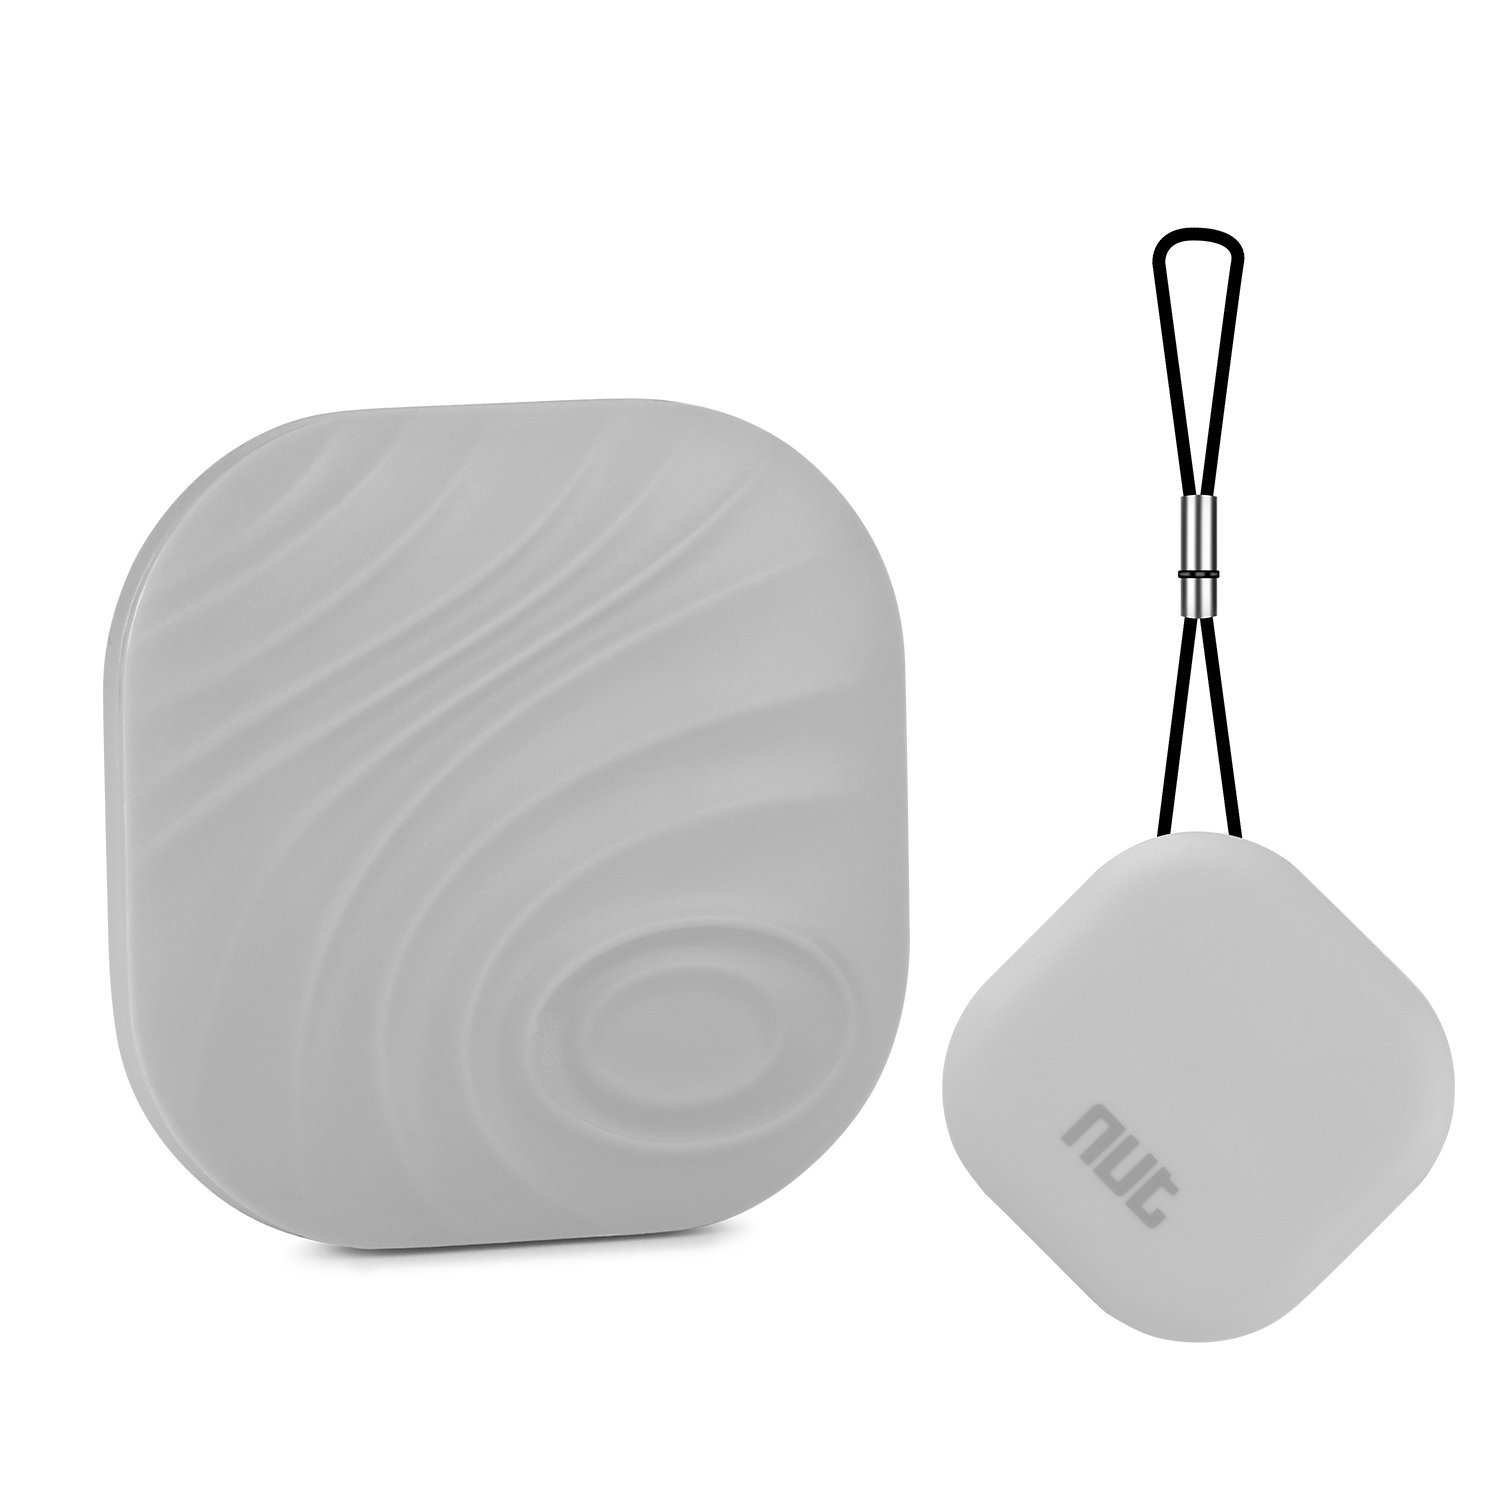 Apsung Key Finder, Wireless Anti-Lost Tracker, Anything Finder Wallet Bags Pet, Nut 3 Mini Locator App Control Smartphones.